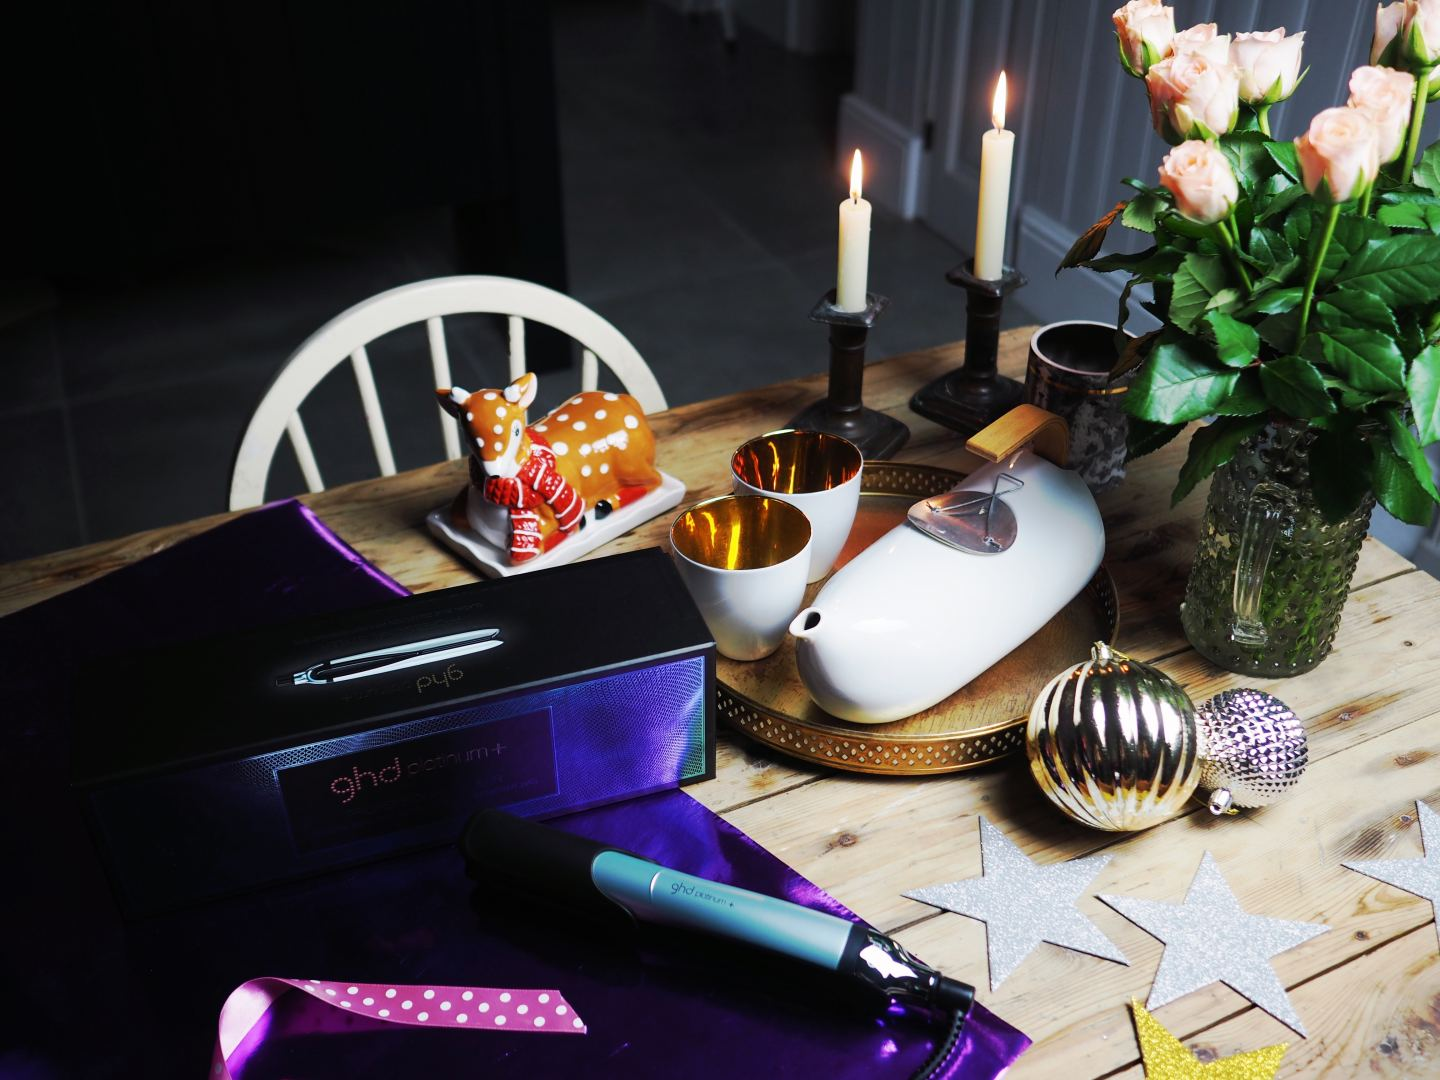 ghd straighteners glacier blue limited edition